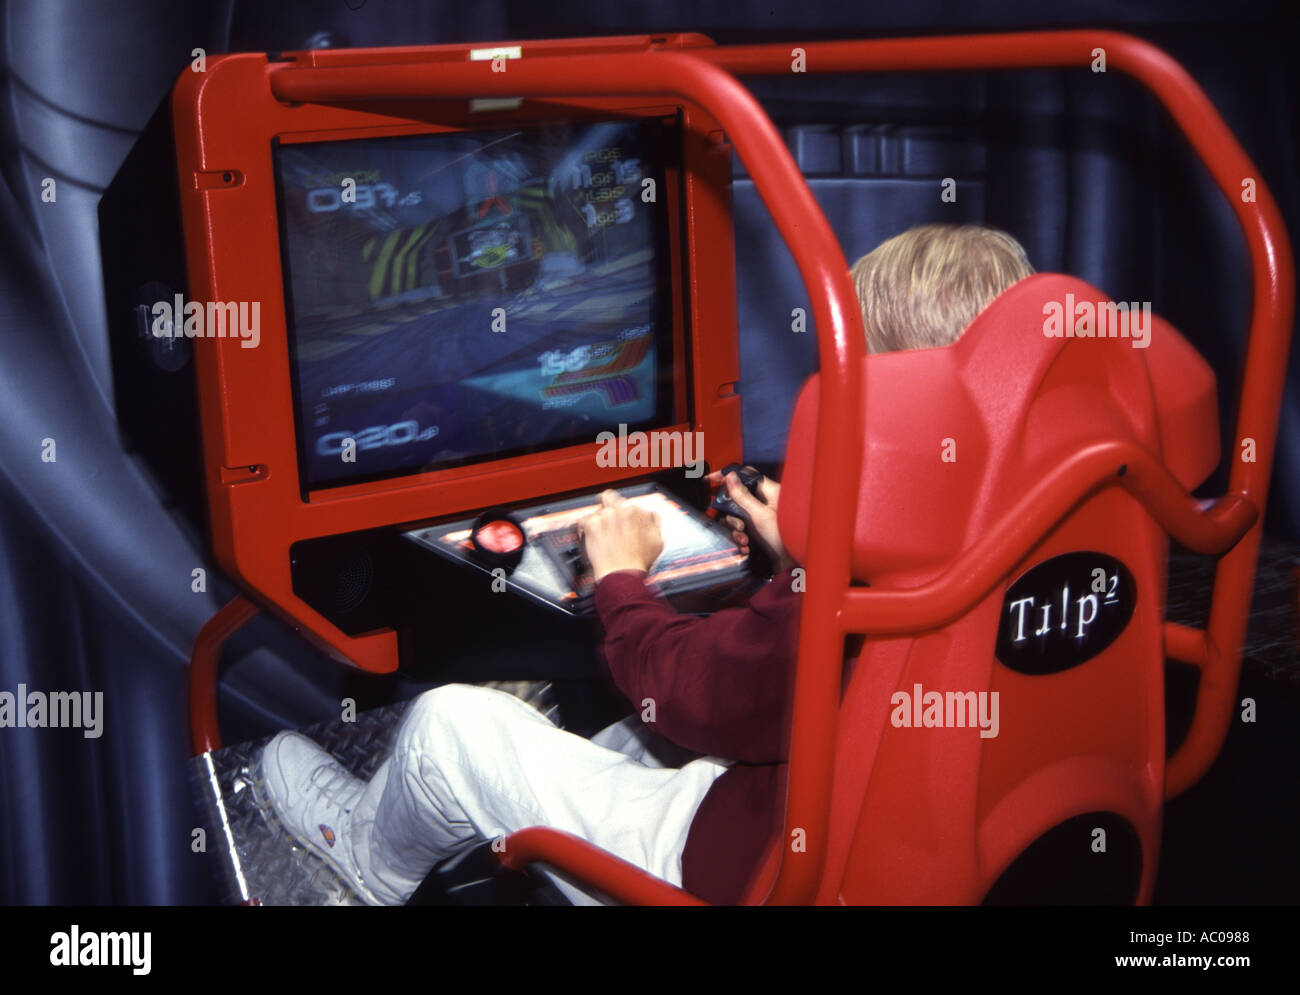 Young boy playing a video arcade game - Stock Image